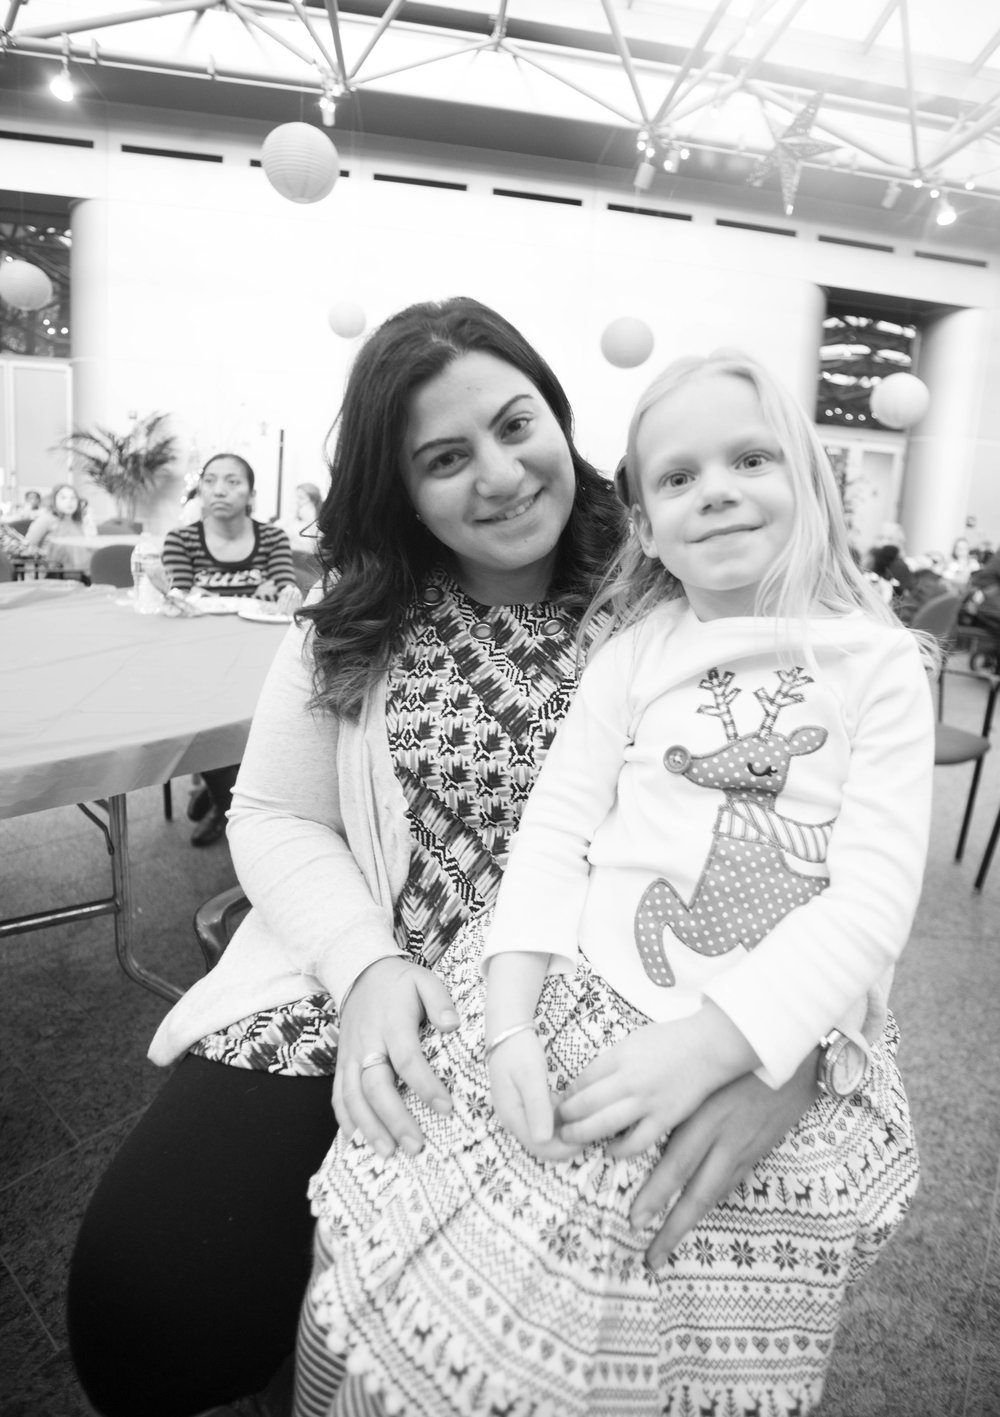 hope-holiday-party-2016_31458000702_o.jpg